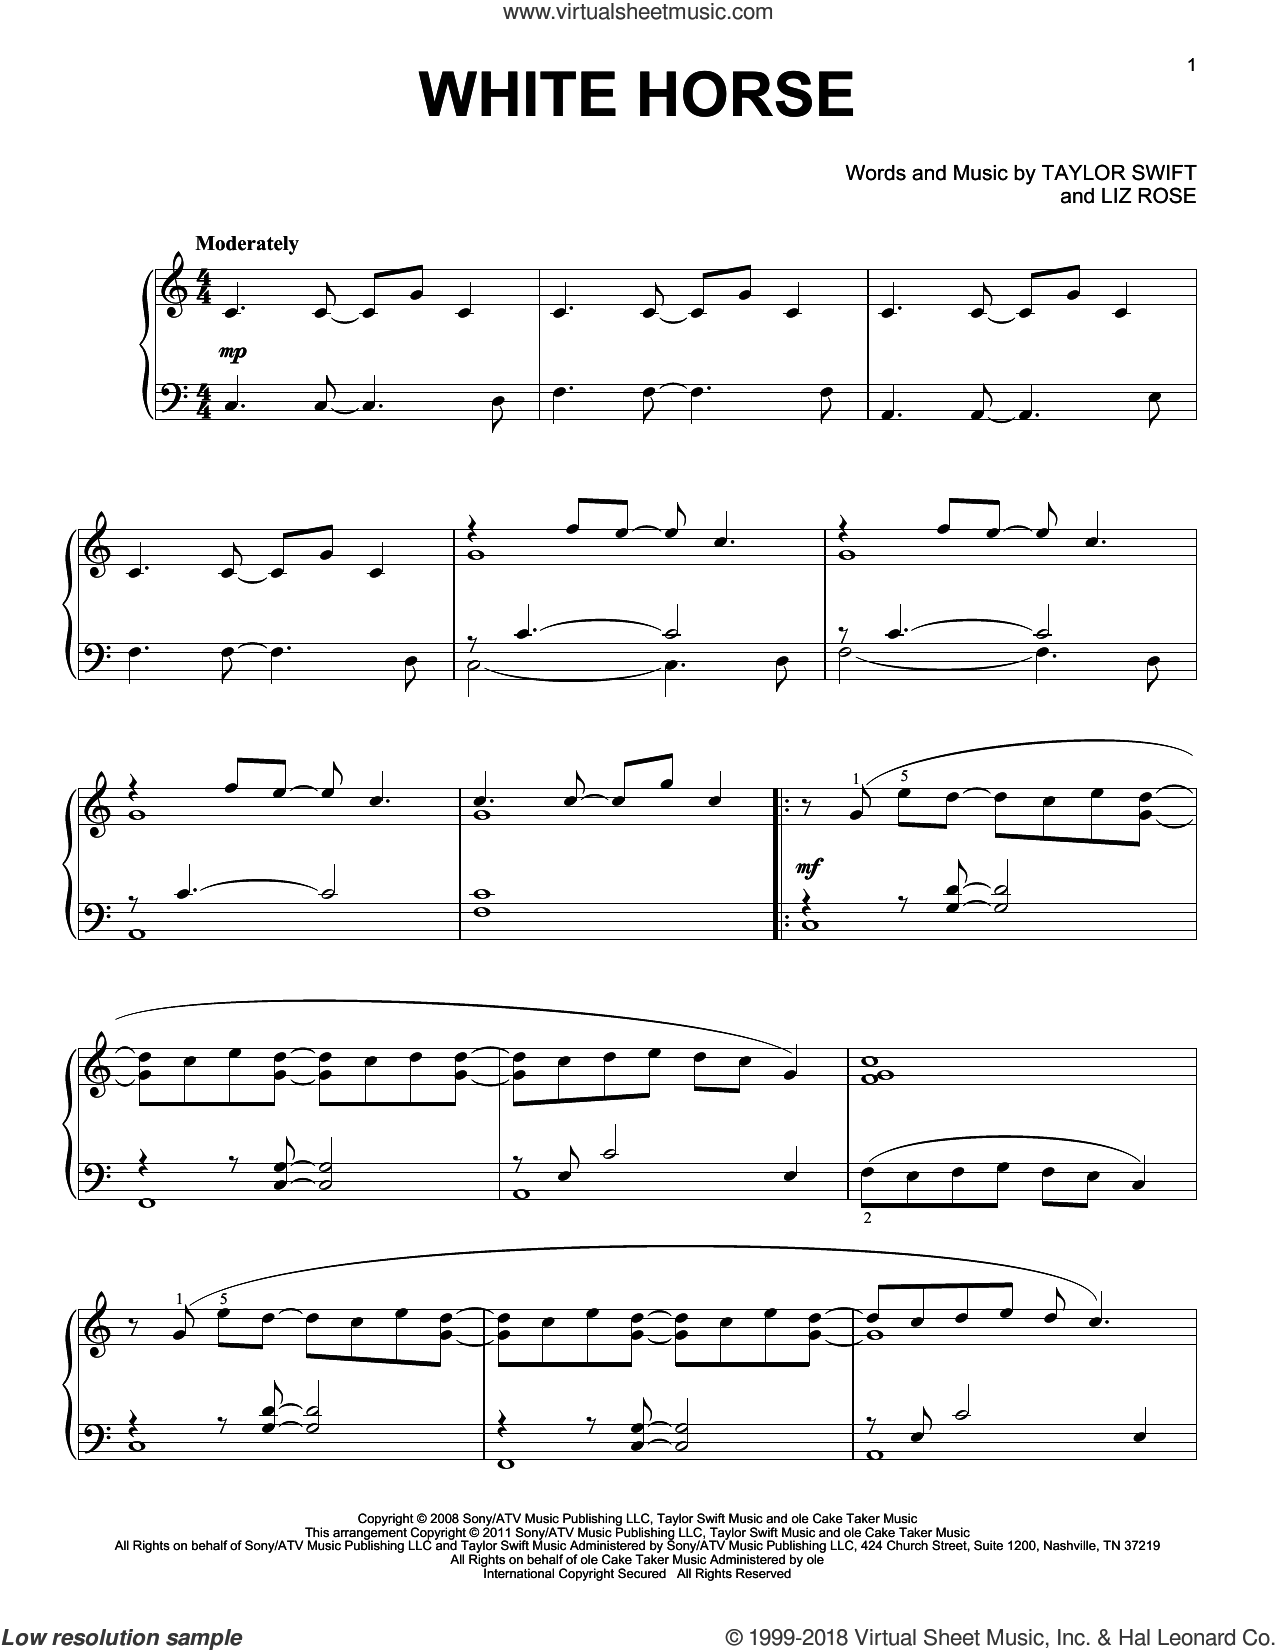 White Horse sheet music for piano solo by Taylor Swift and Liz Rose, intermediate skill level